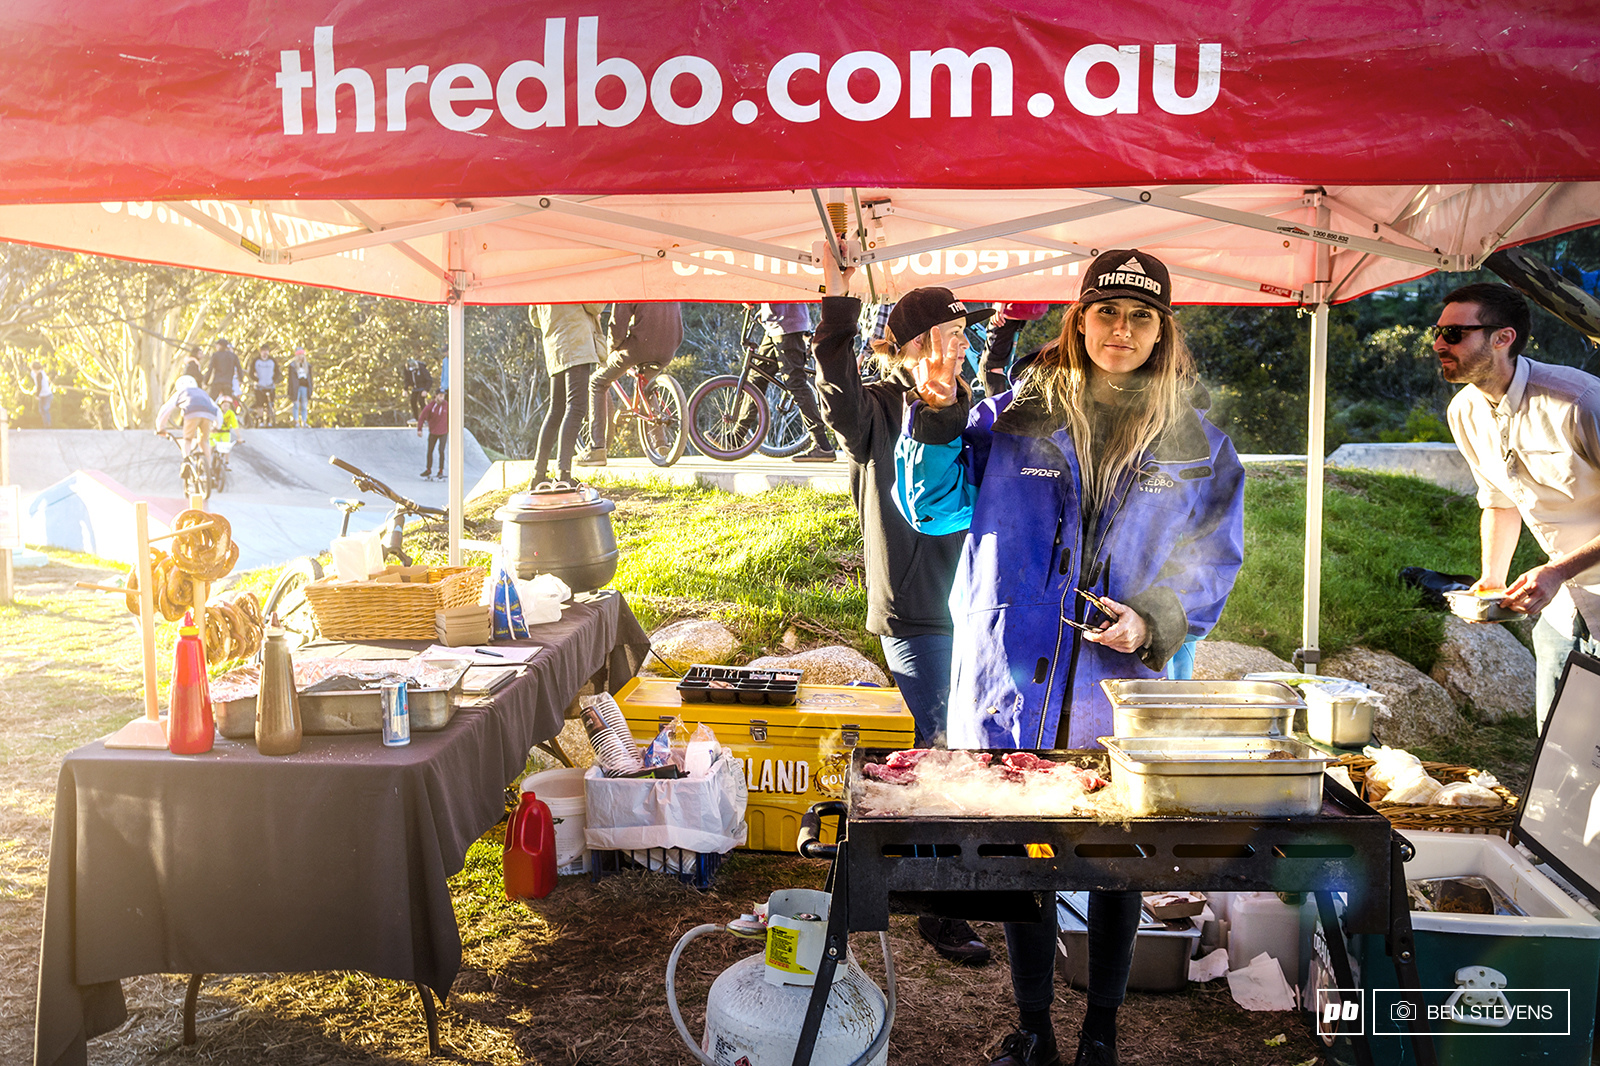 Wouldn t be an Aussie event without a Barbie